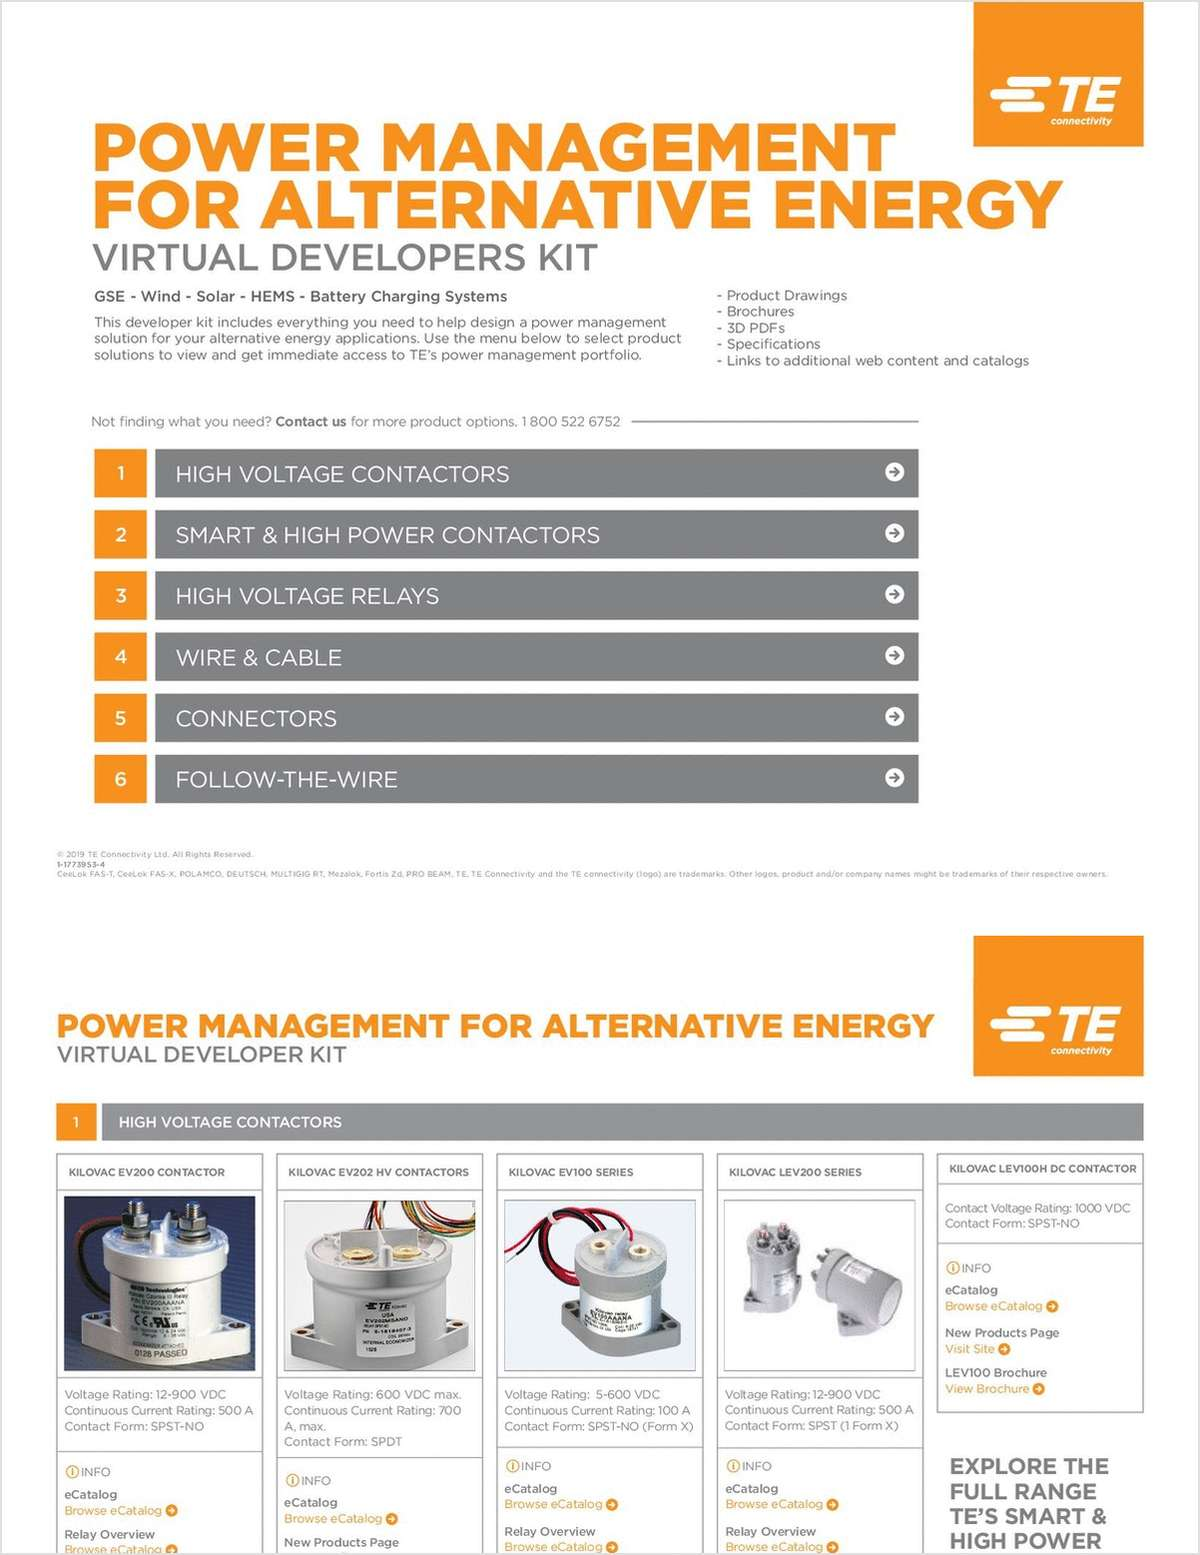 Power Management Solutions for Alternative Energy